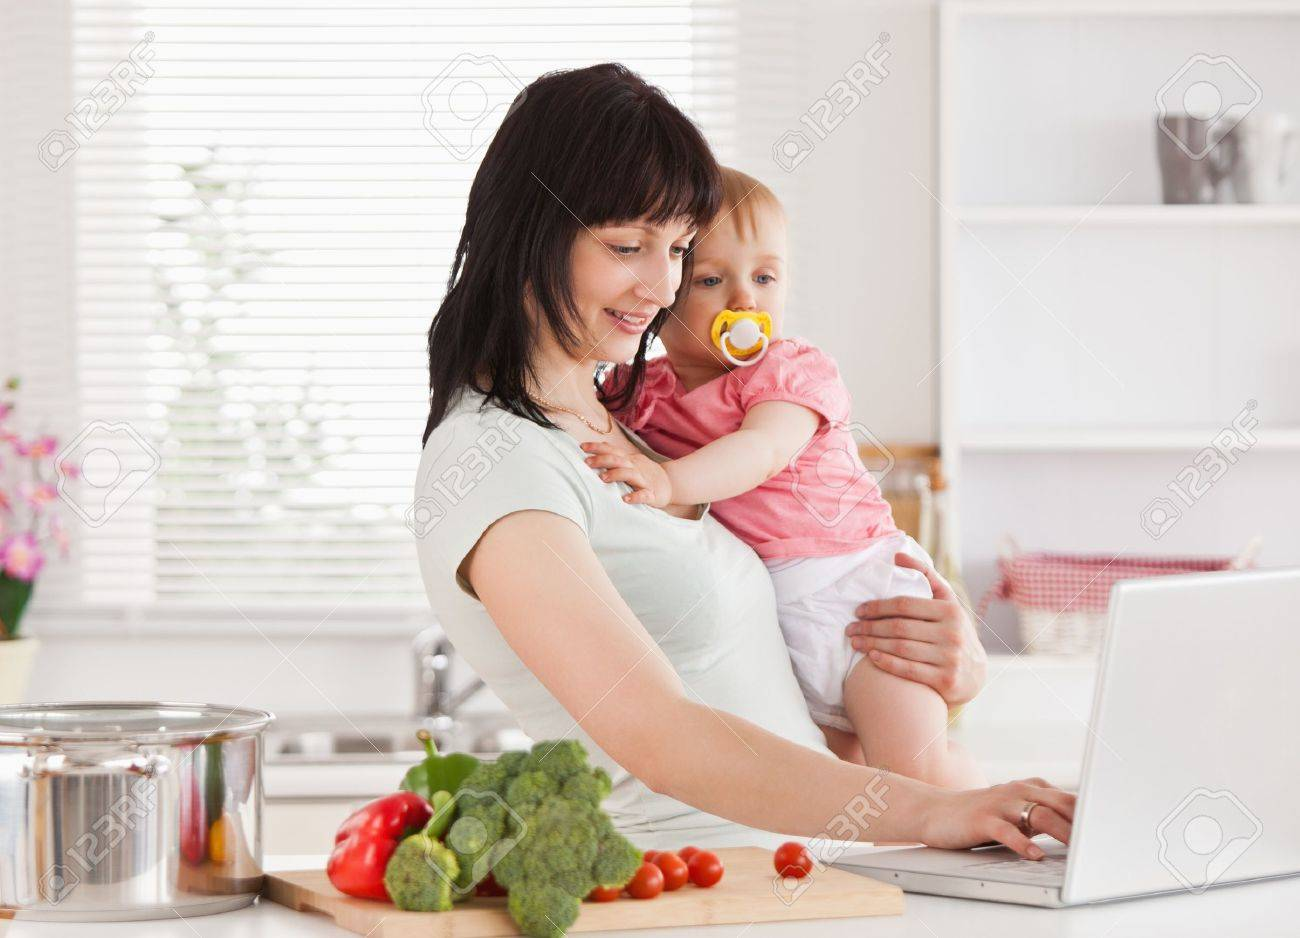 Good looking woman holding her baby in her arms while standing in the kitchen Stock Photo - 10220905